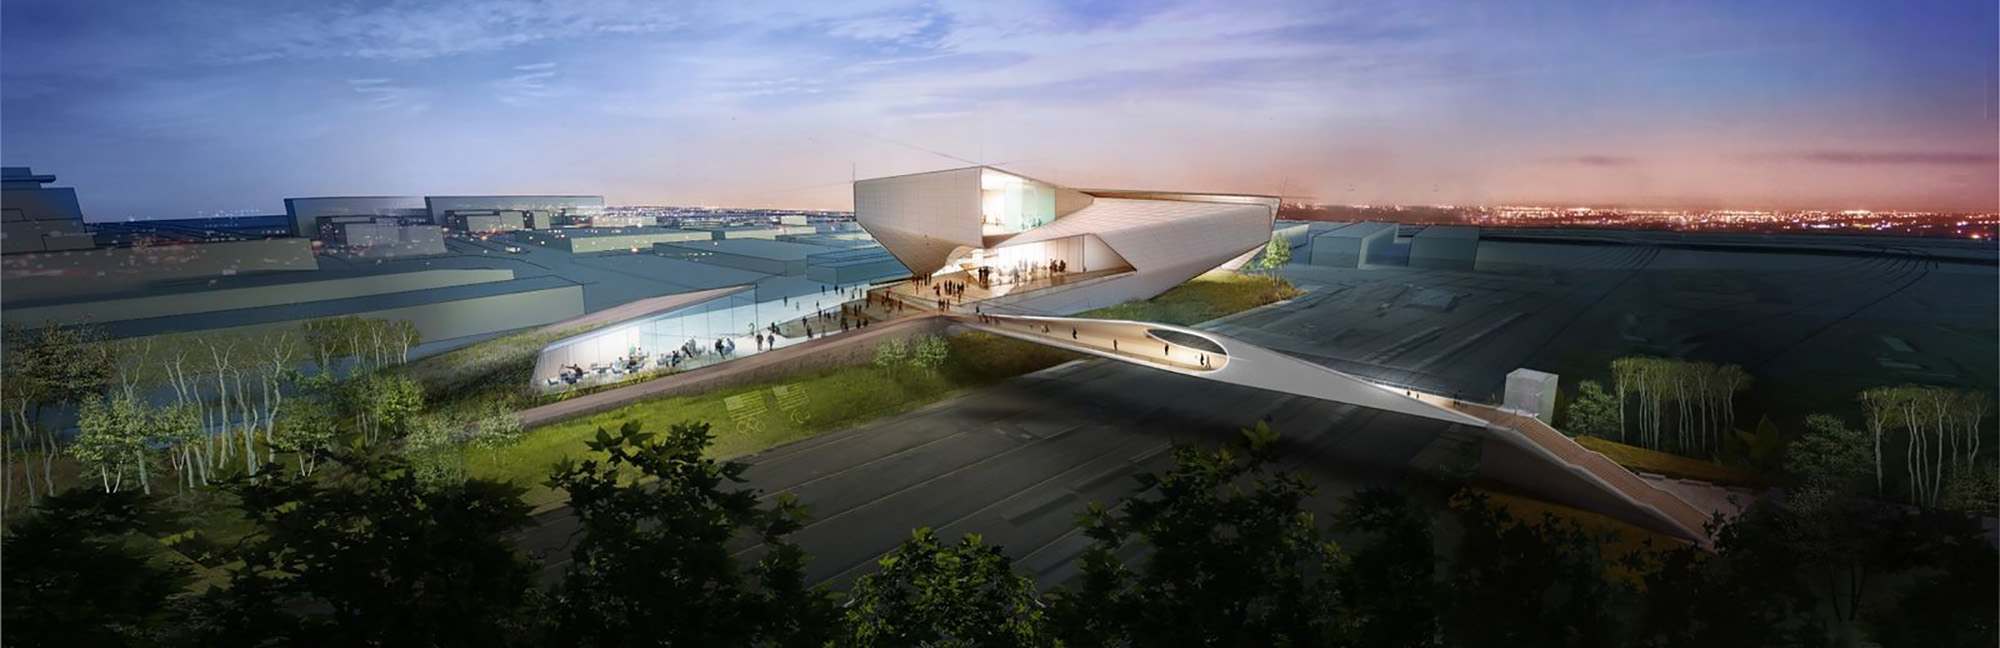 United States Olympic Museum design by Diller Scofidio + Renfro